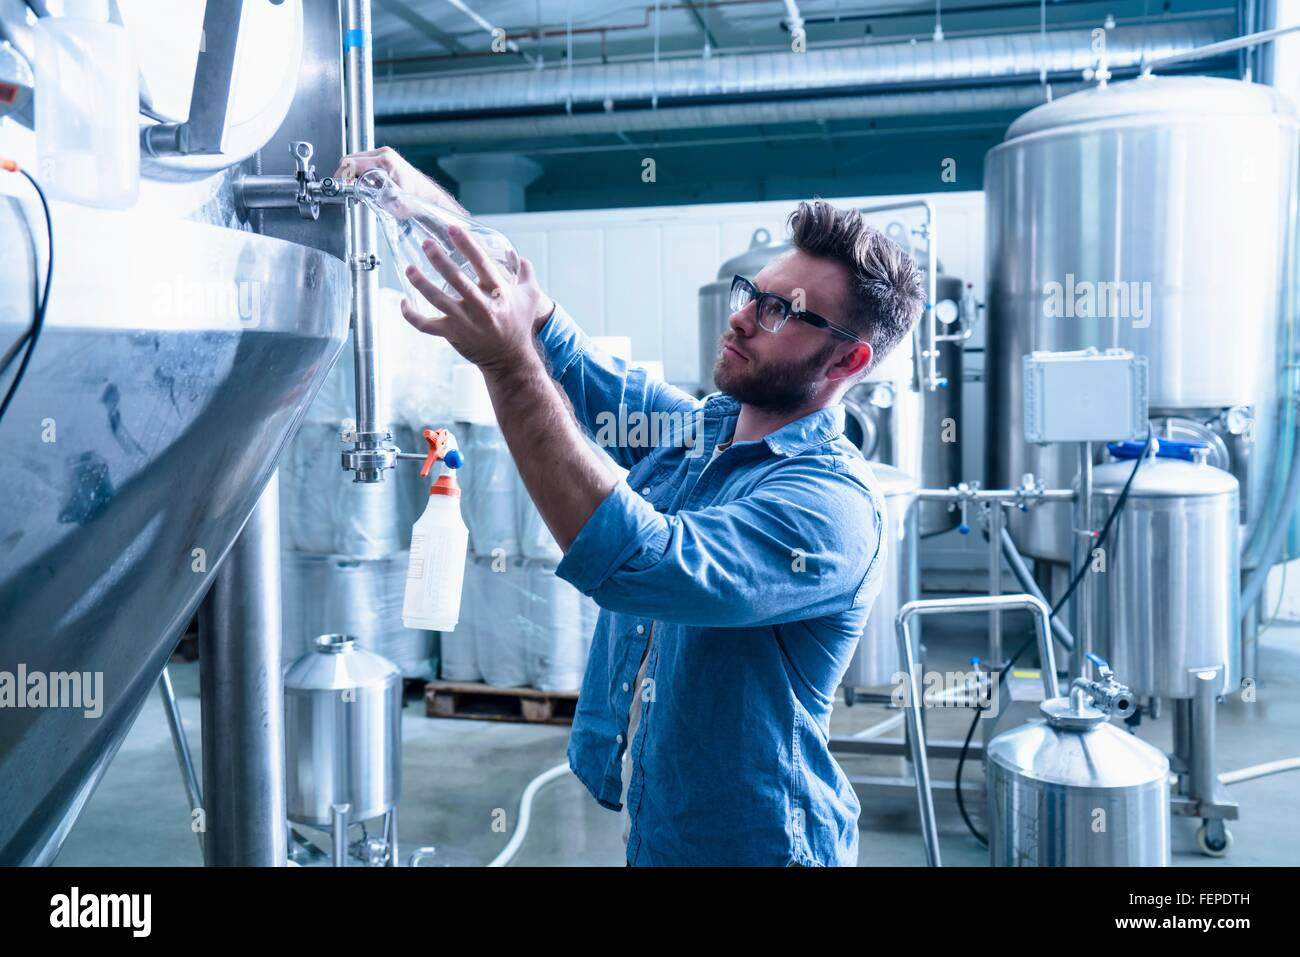 Young man in brewery filling flask with beer - Stock Image